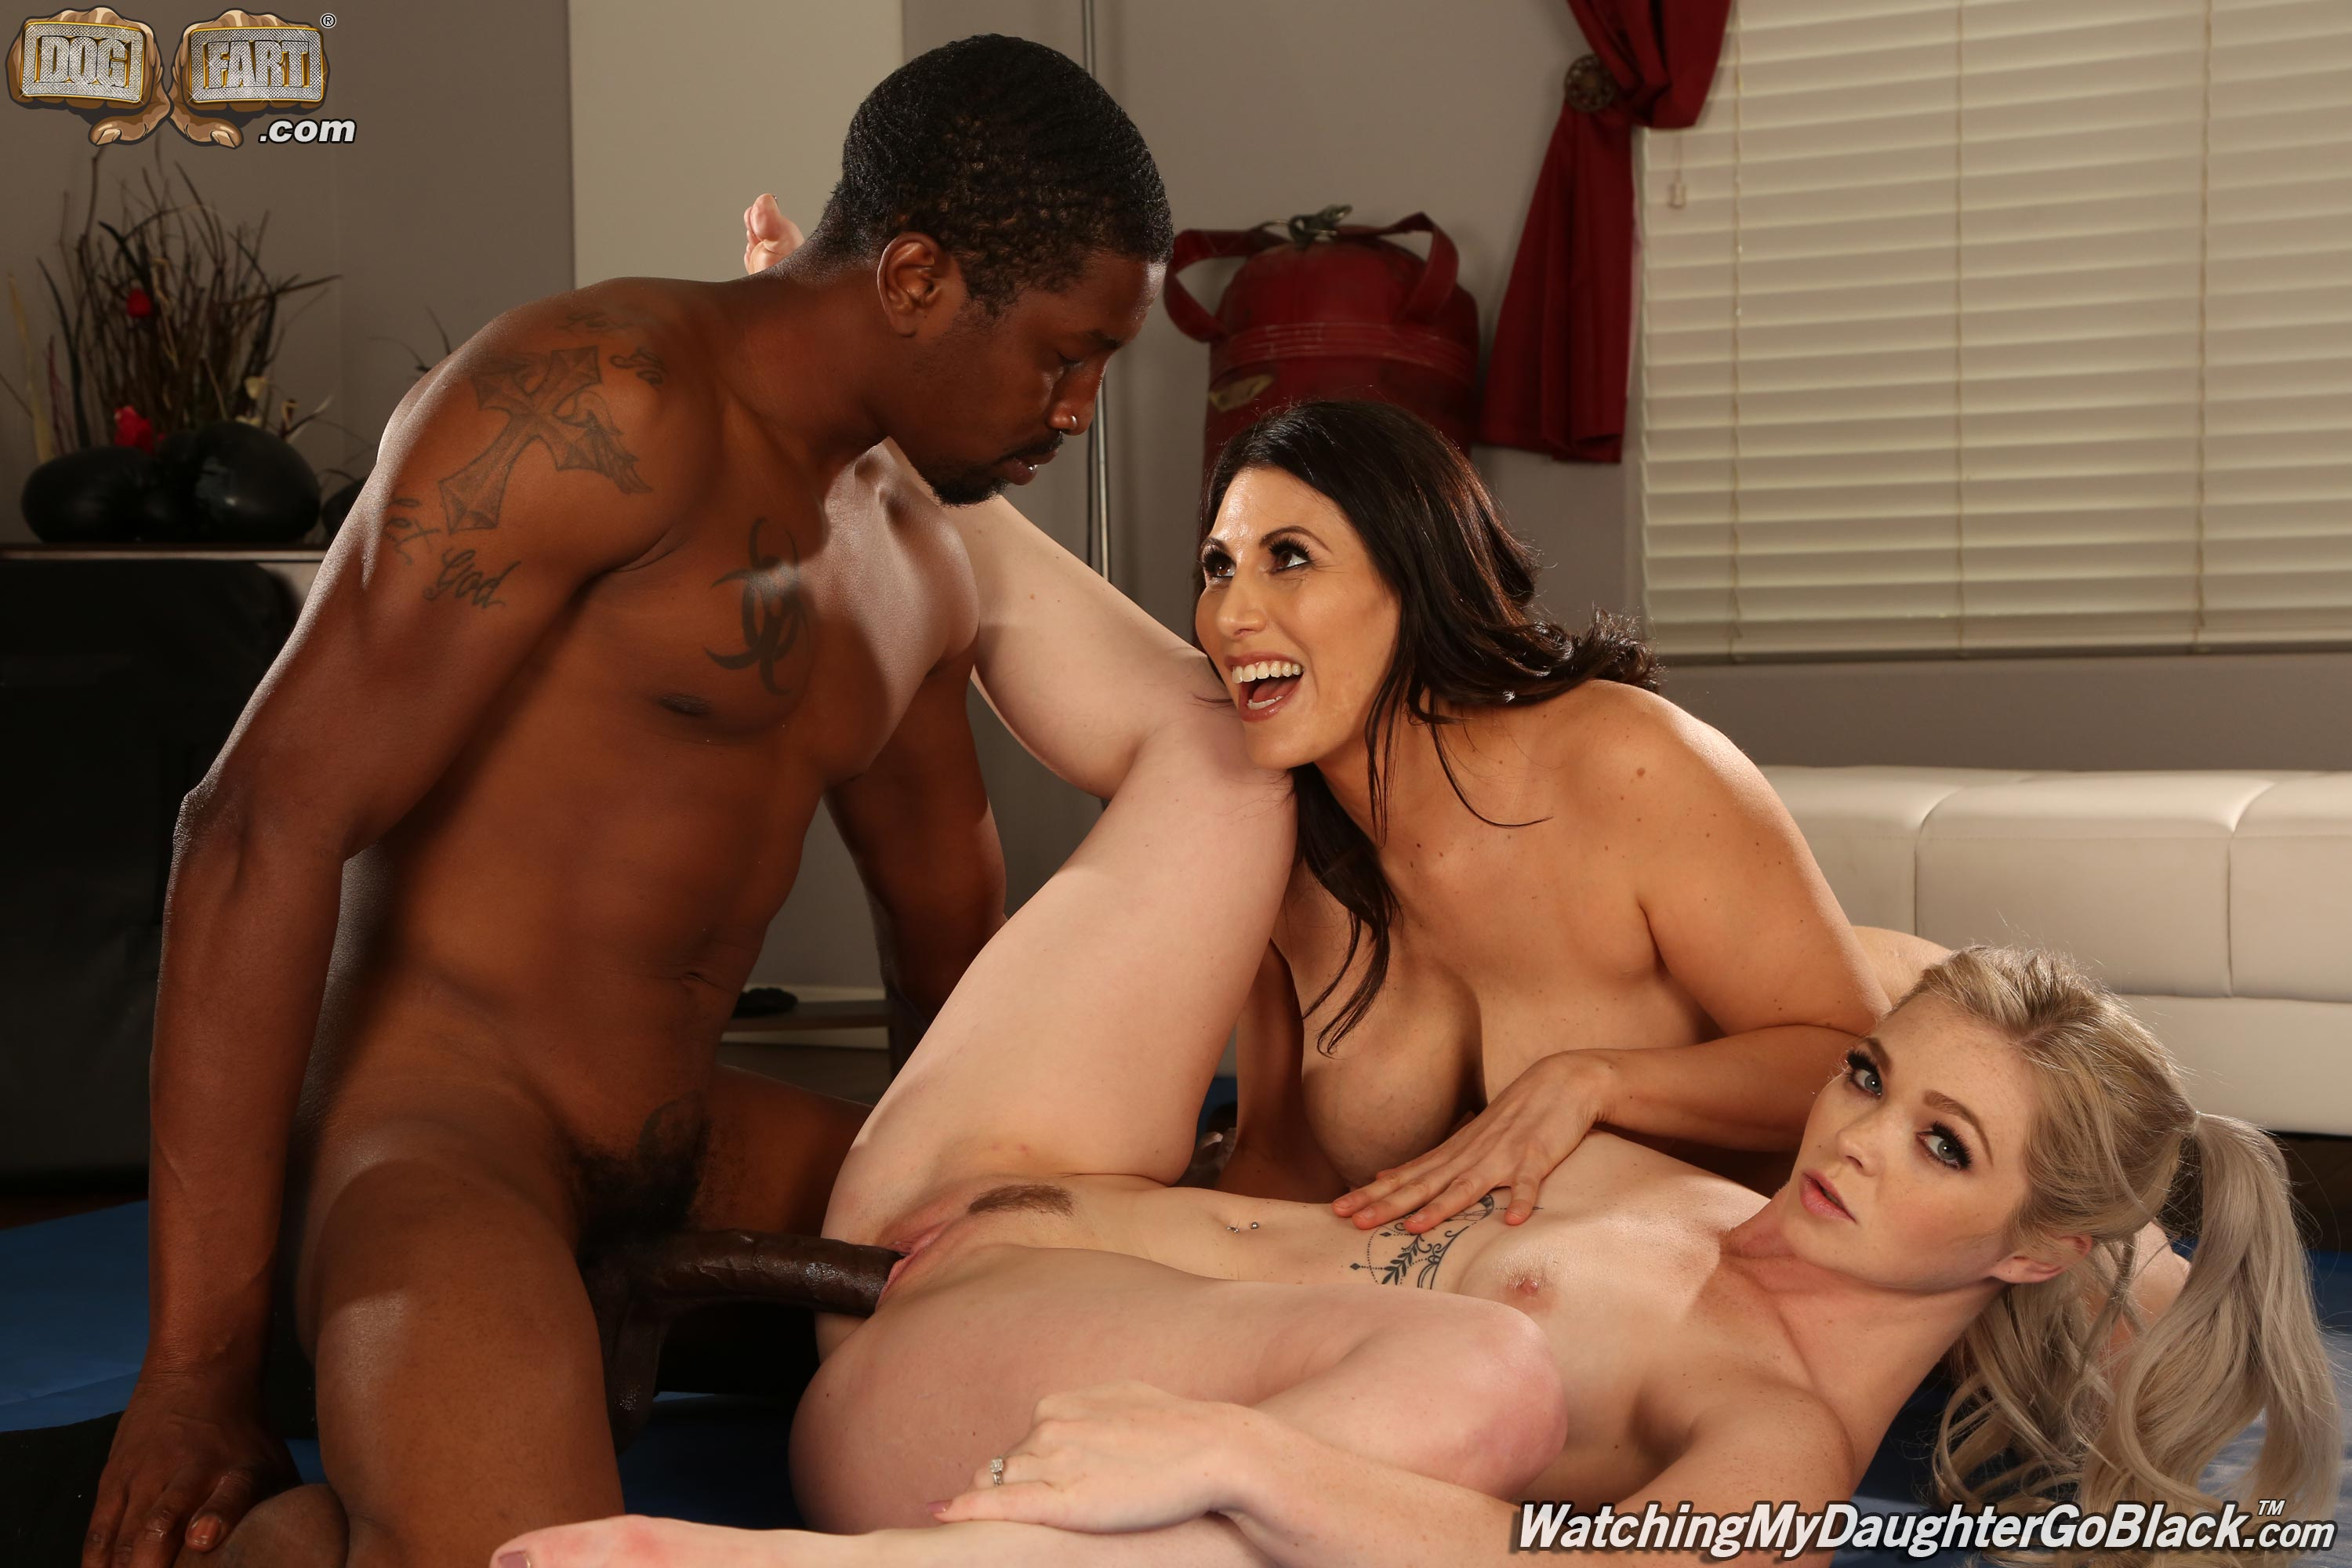 Dogfart 'and Makayla Cox - Watching My Daughter Go Black' starring Kay Carter (Photo 10)